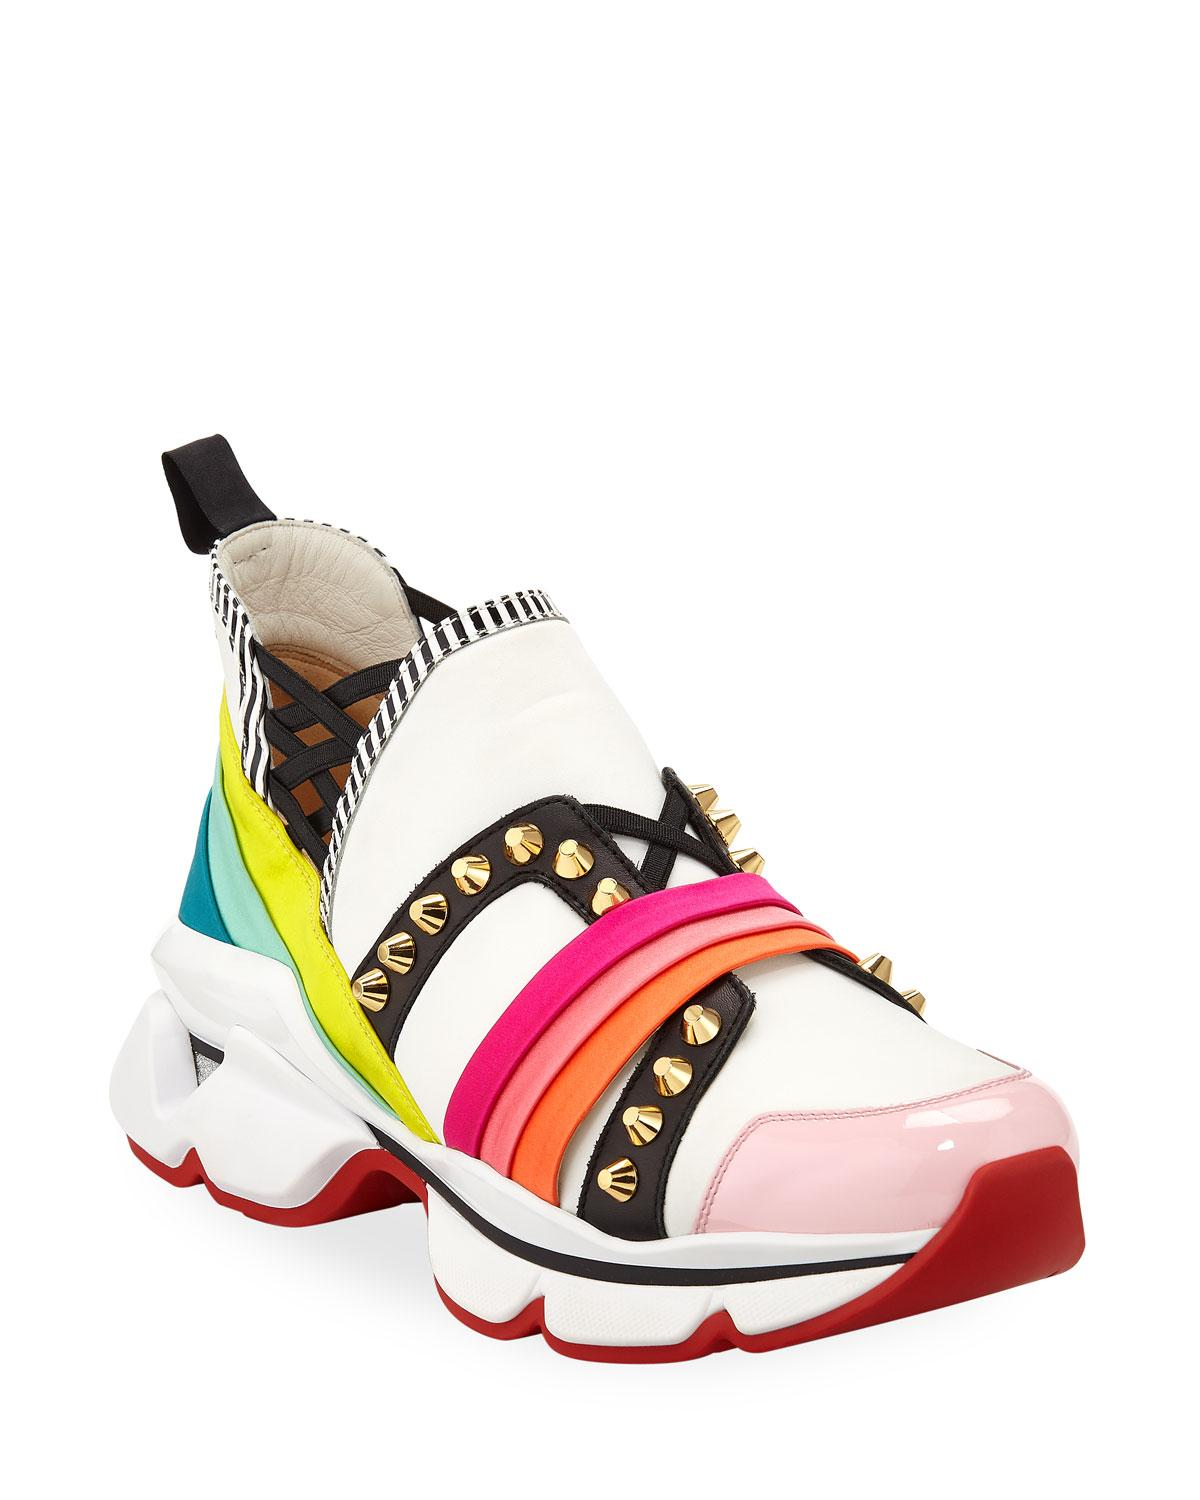 d46e9de3bb7 Lyst - Christian Louboutin 123 Run Rainbow Red Sole Sneakers in Red